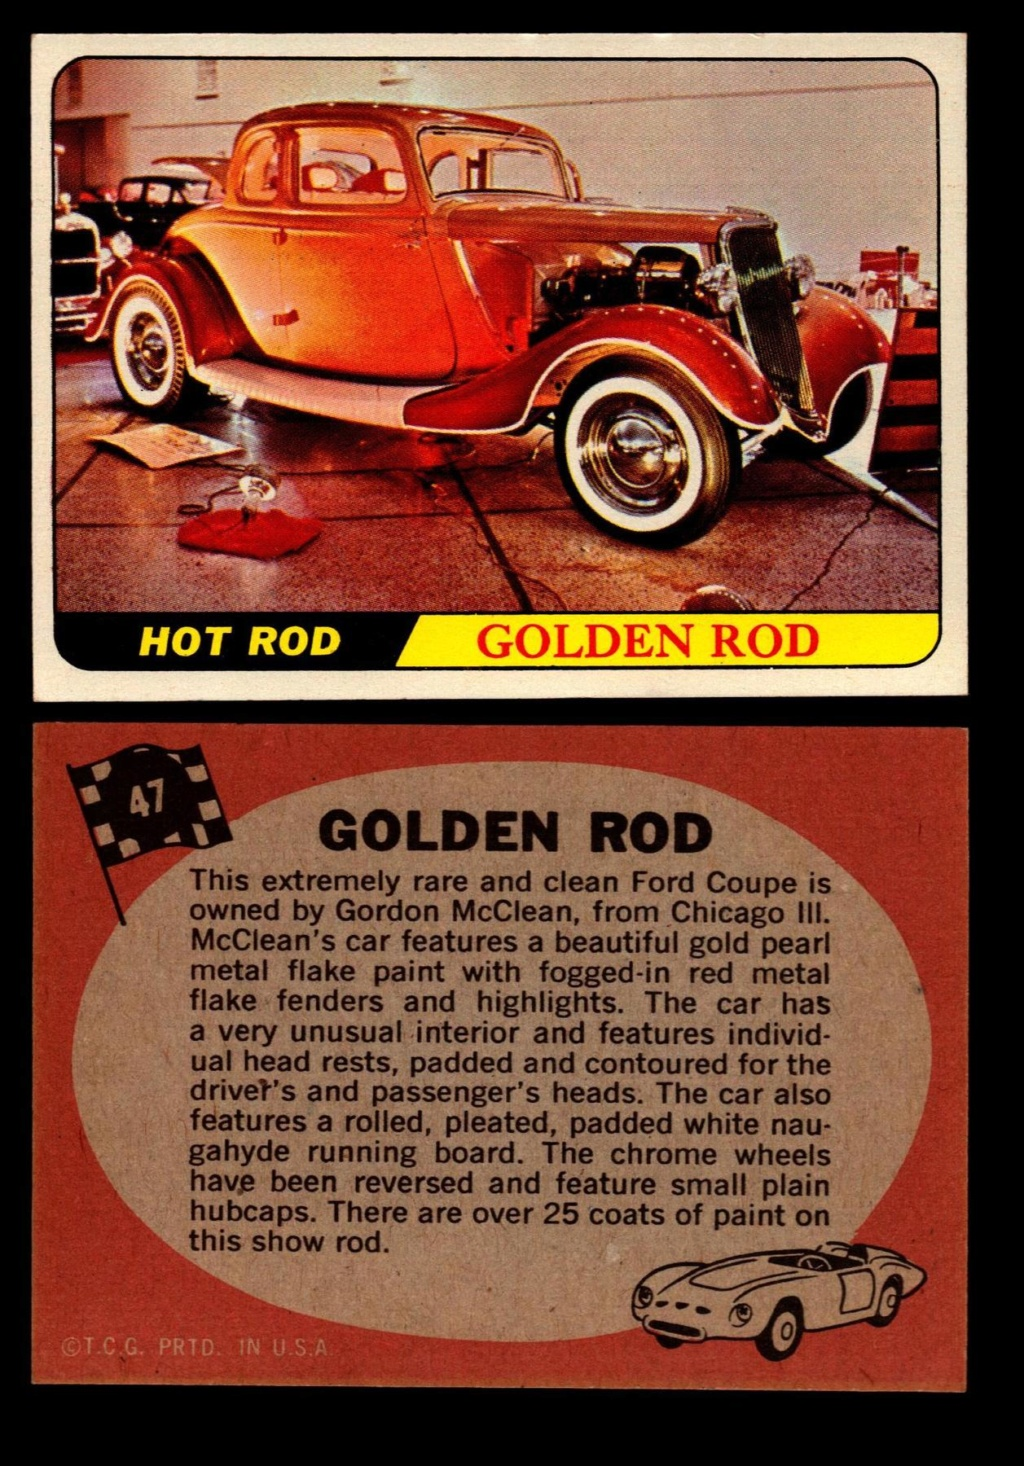 Hot Rods Topps - Vintage Trading Cards 1968 - Custom car - Dragster - Racer - Dream car - Barris Kustom City - Ed Roth Darrill Starbird, Gene Winfield, Bill Cuchenberry - Page 2 47_a1210